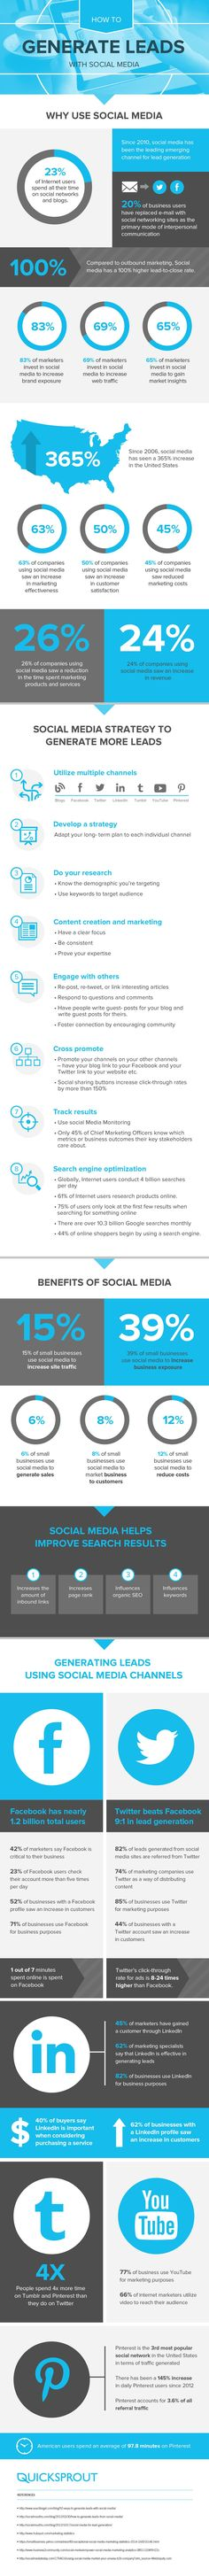 Infographic How to Generate Leads with Social Media